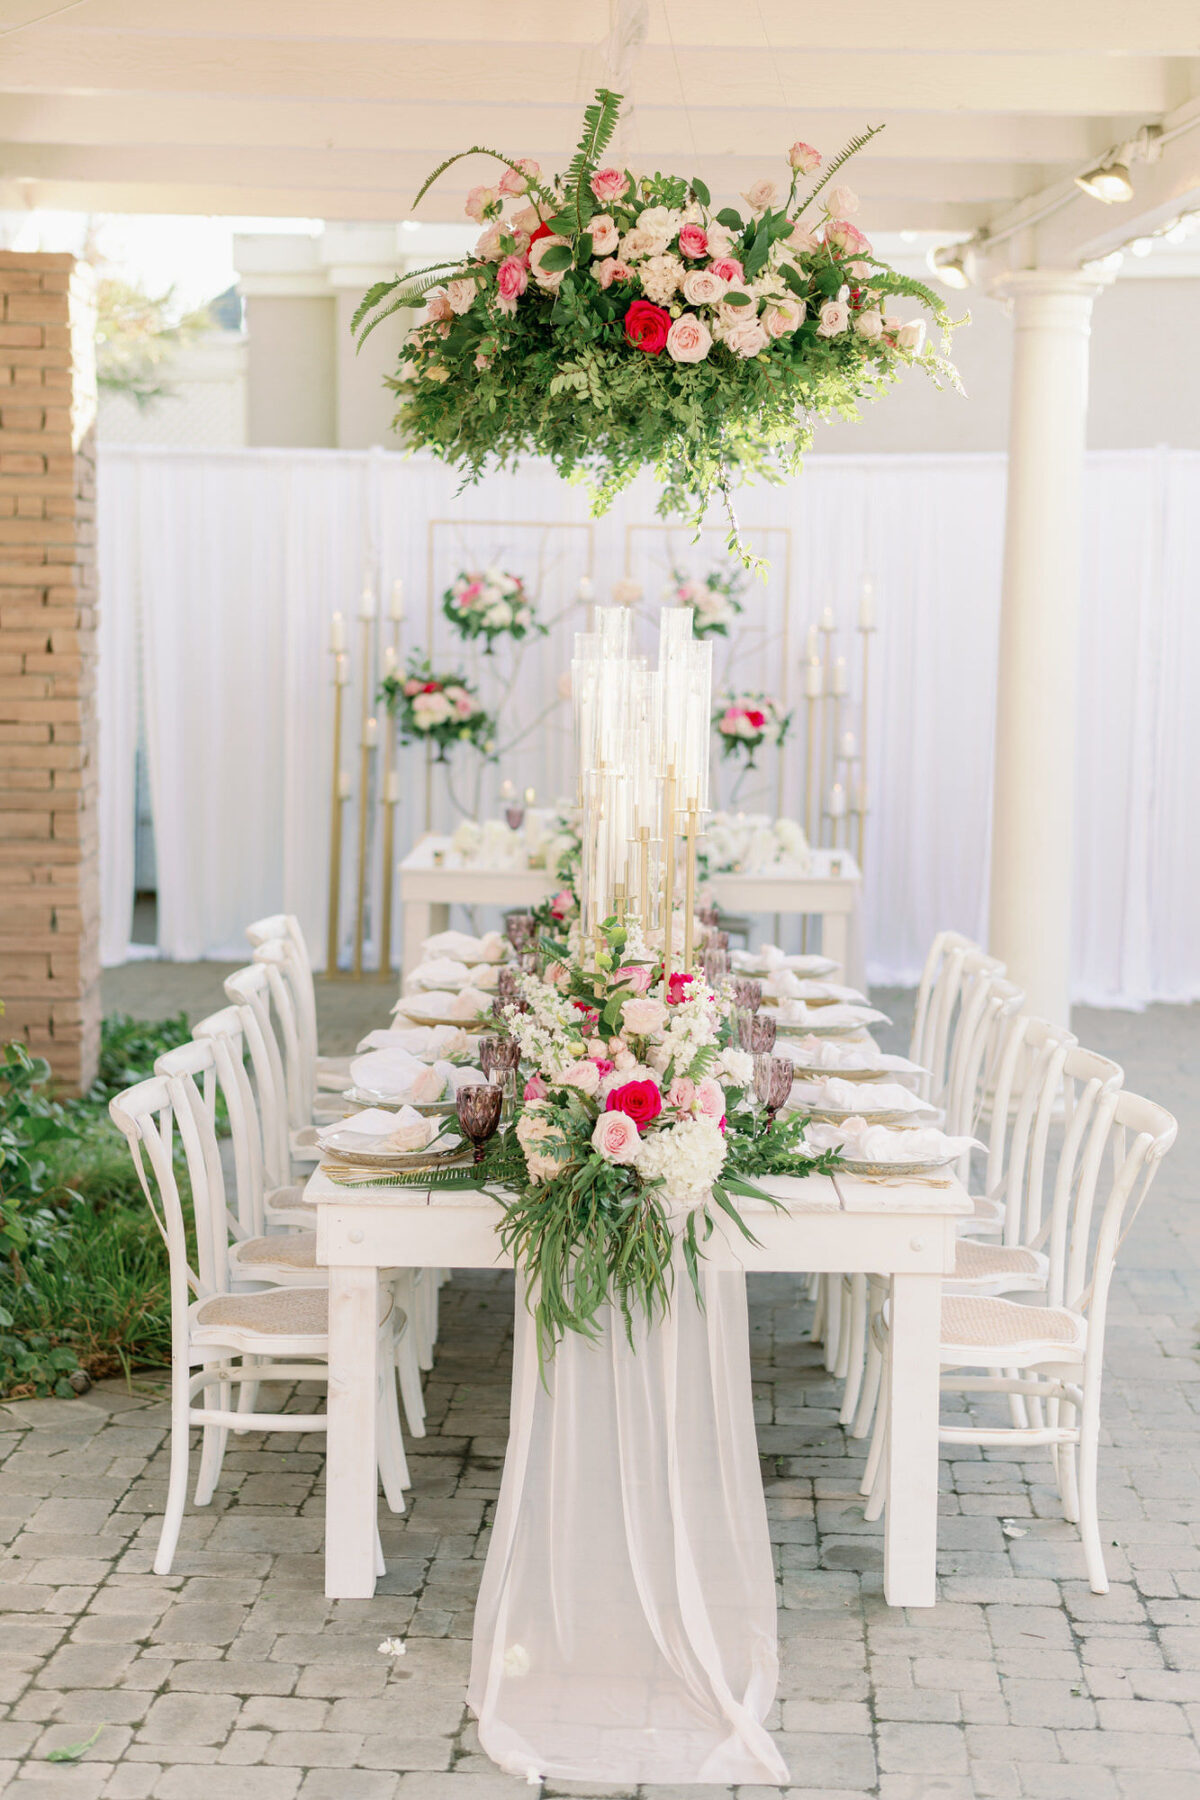 Wedding table greenery and flowers installation - Peony Park Photography